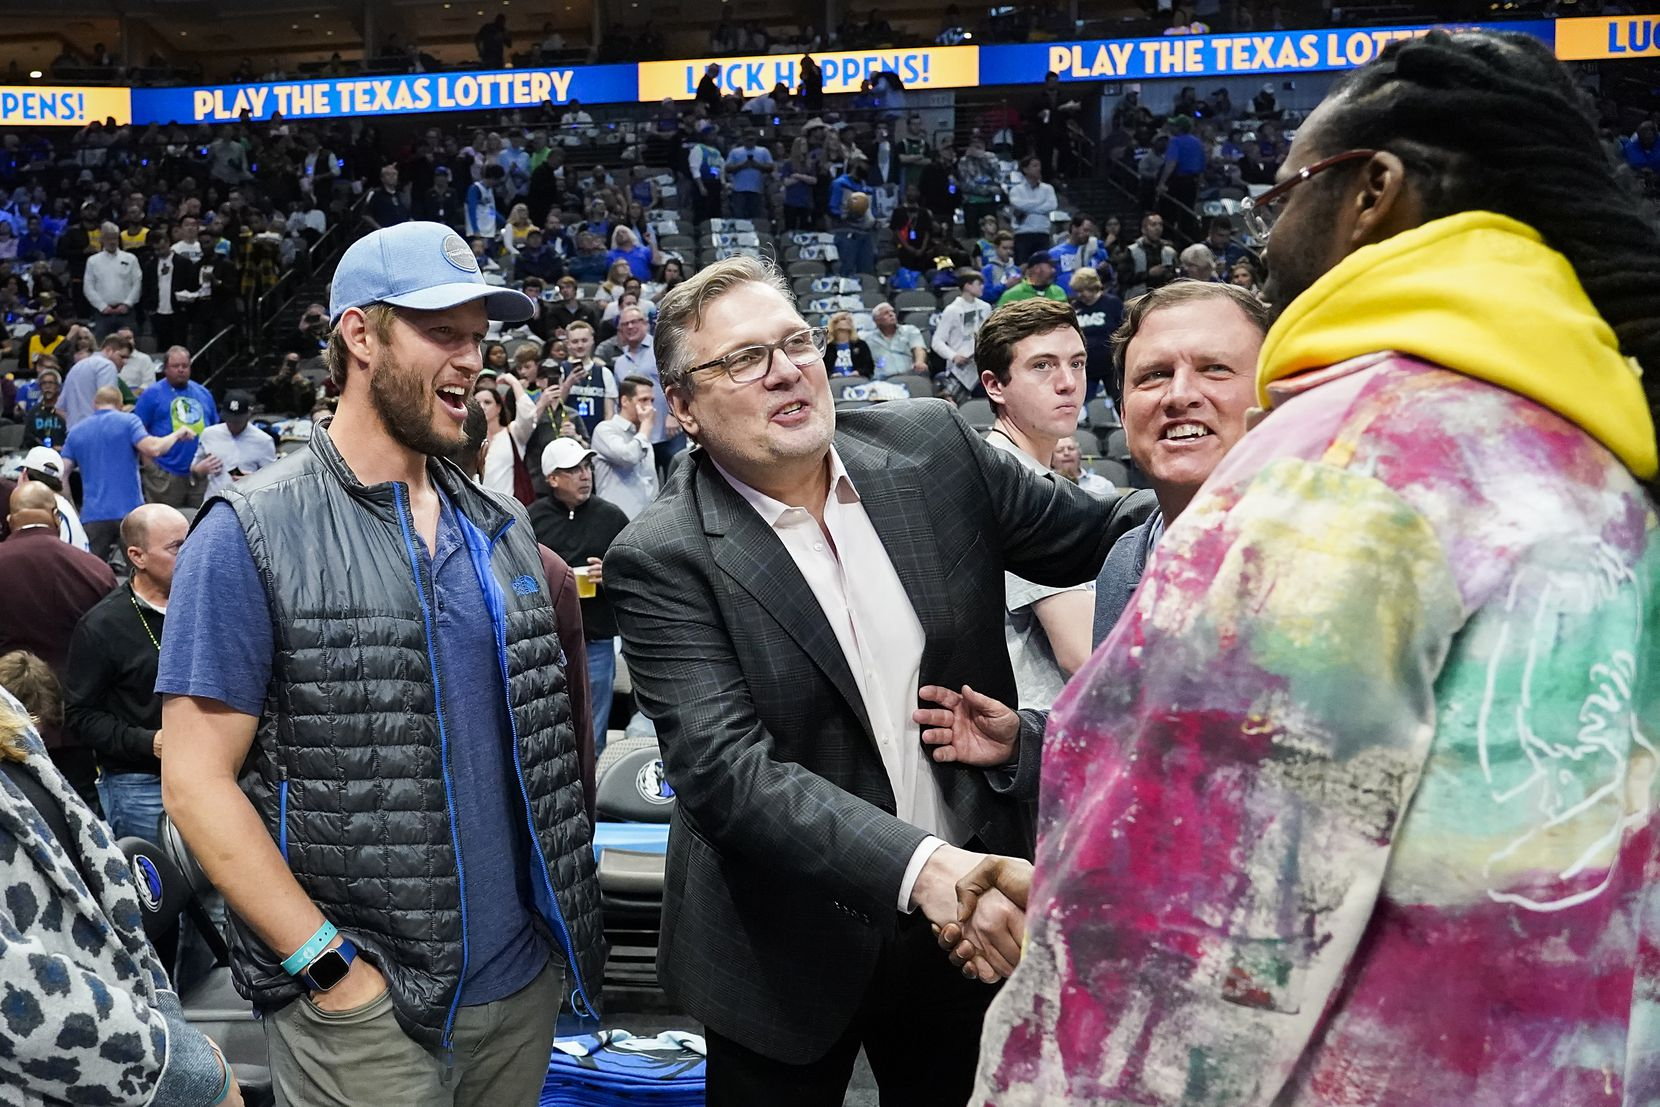 Dallas Mavericks general manager Donnie Nelson shakes hands with rapper 2 Chainz as Los Angeles Dodgers pitcher Clayton Kershaw looks on before an NBA basketball game against the Los Angeles Lakers at American Airlines Center on Friday, Jan. 10, 2020, in Dallas.